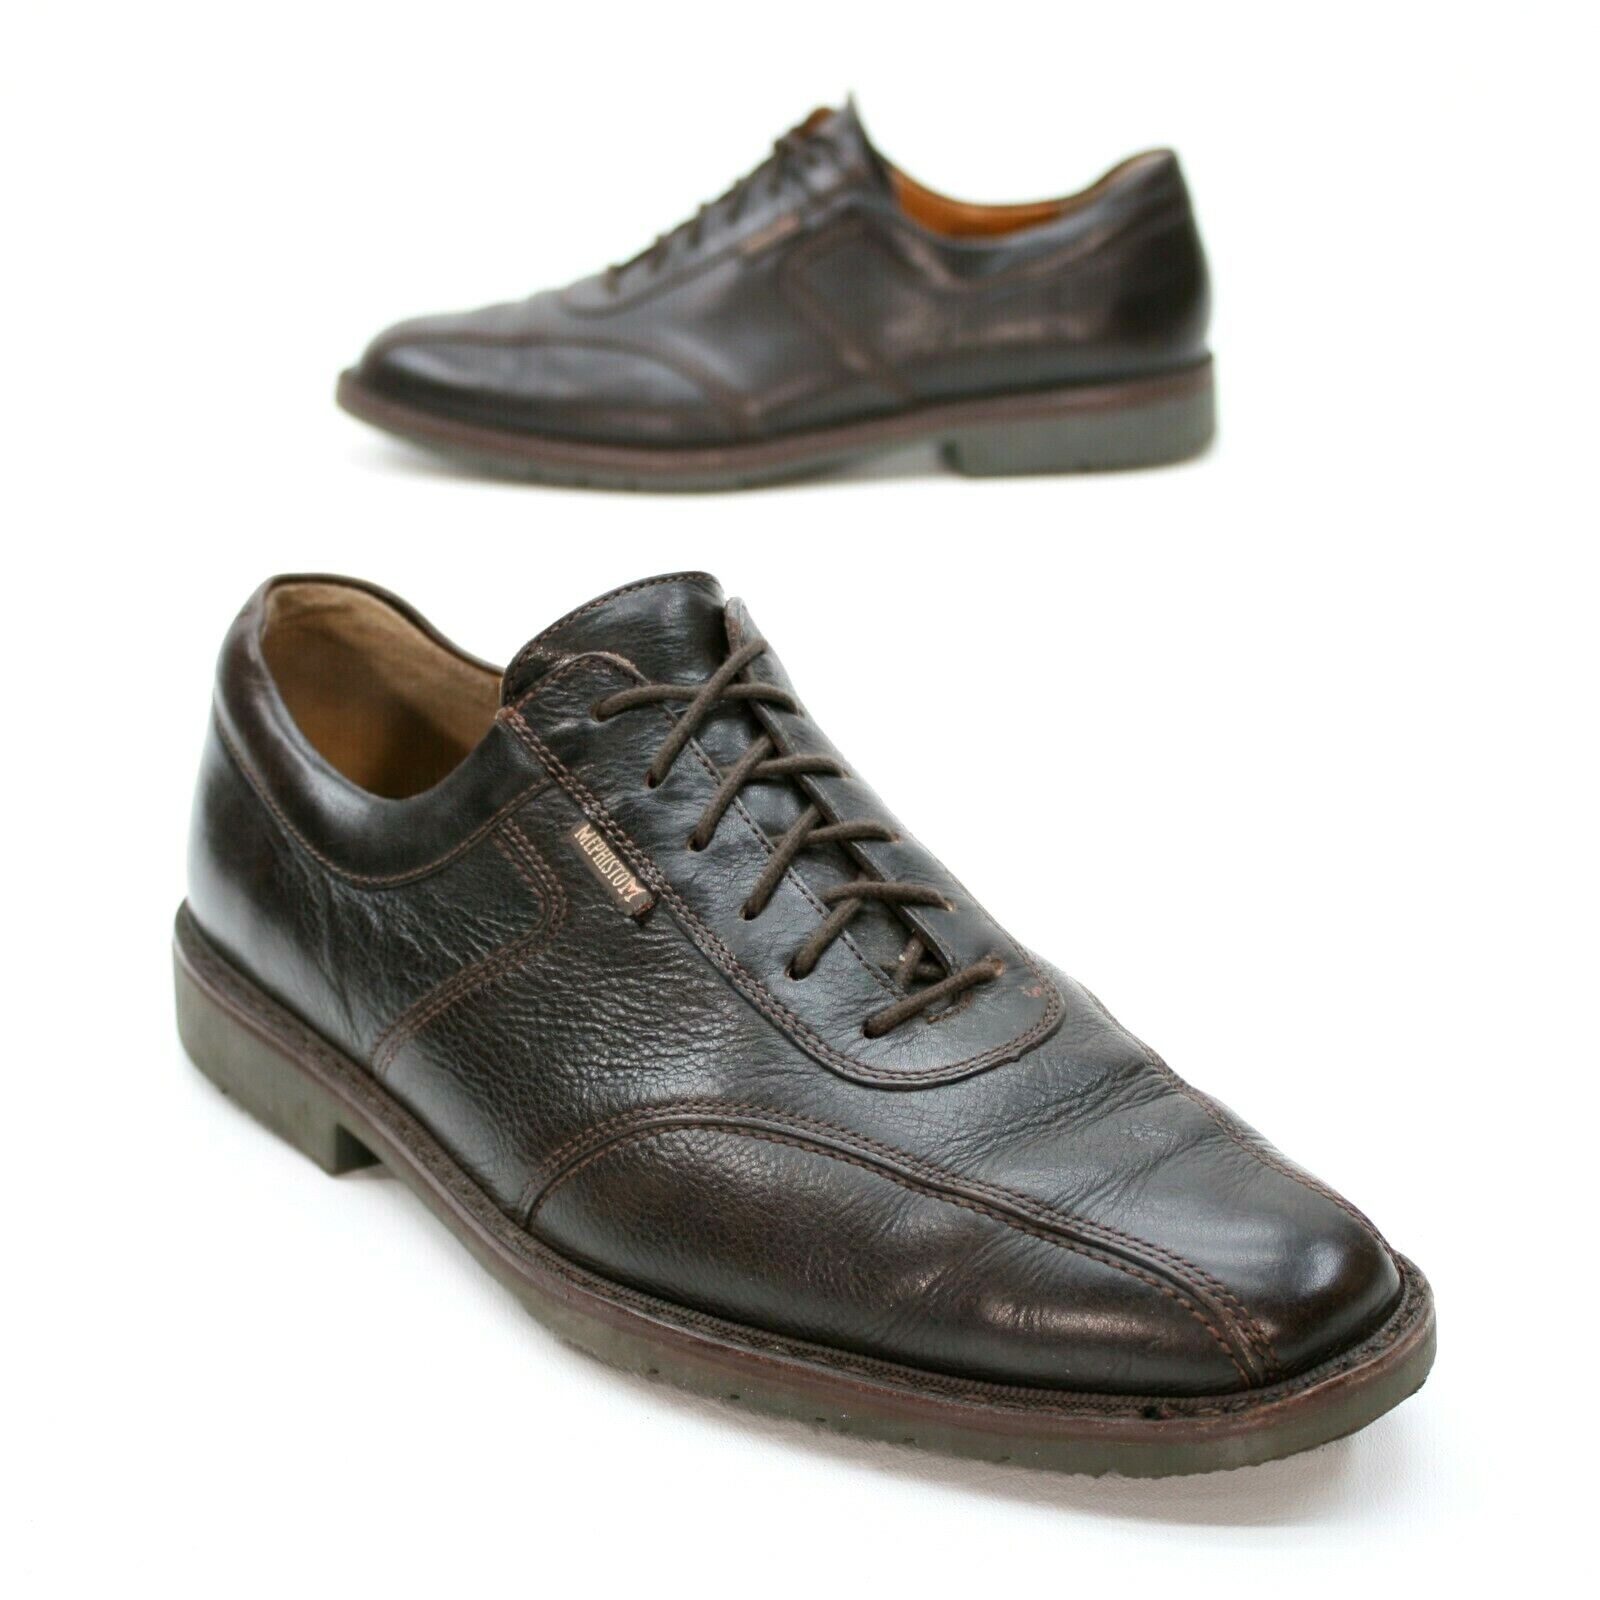 Mephisto Men's 10 Brown Leather Oxfords Bike Toe Lace Up Dress Caoutchouc Soles